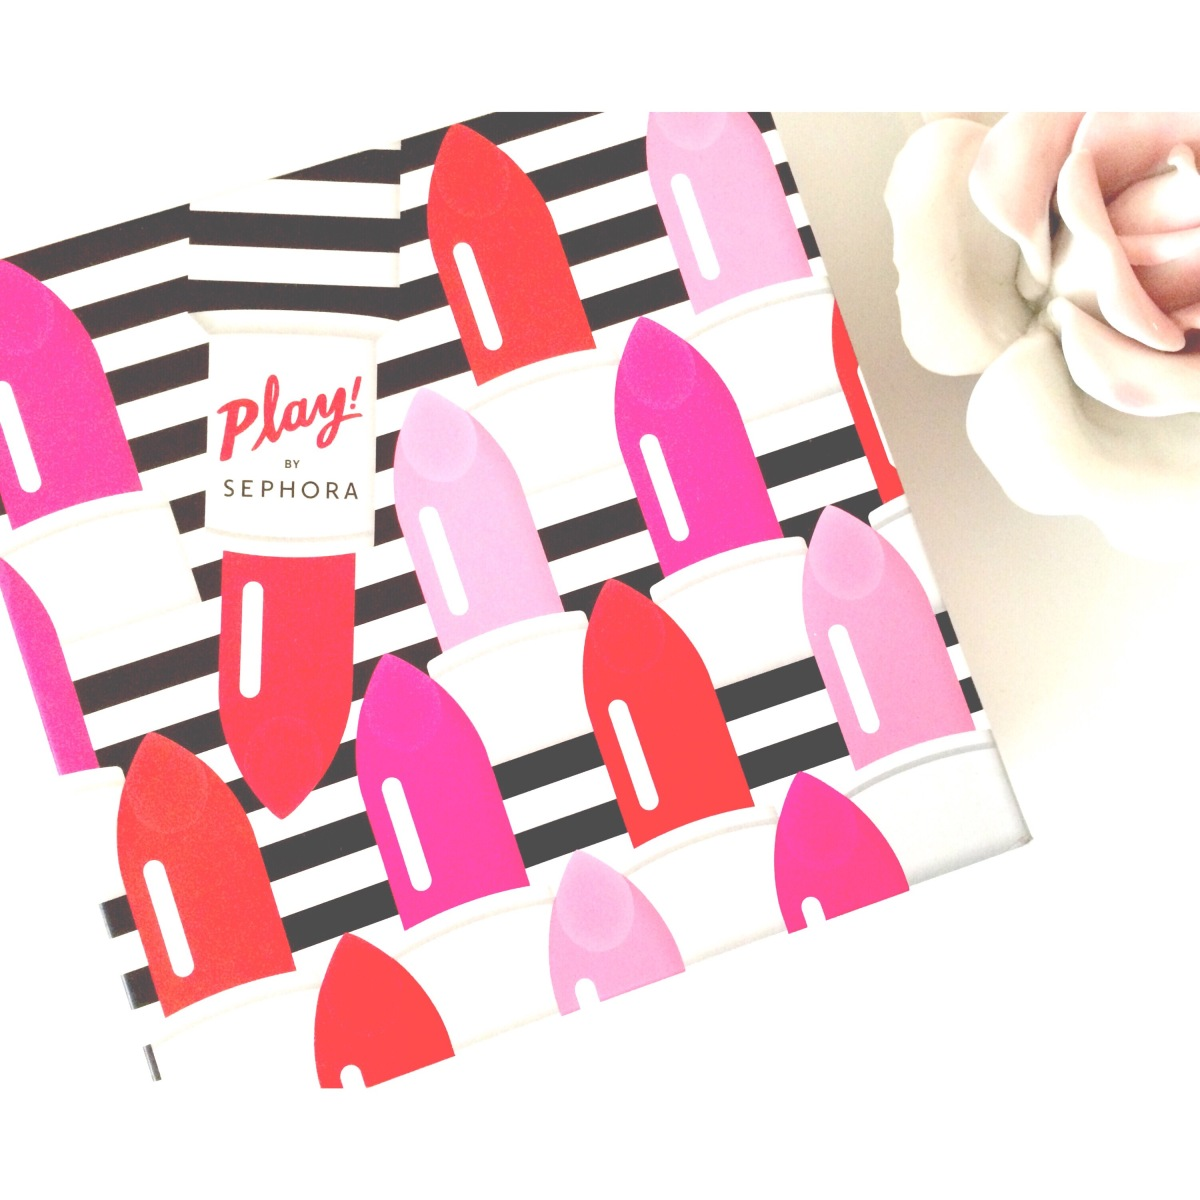 Play! By Sephora | November 2015